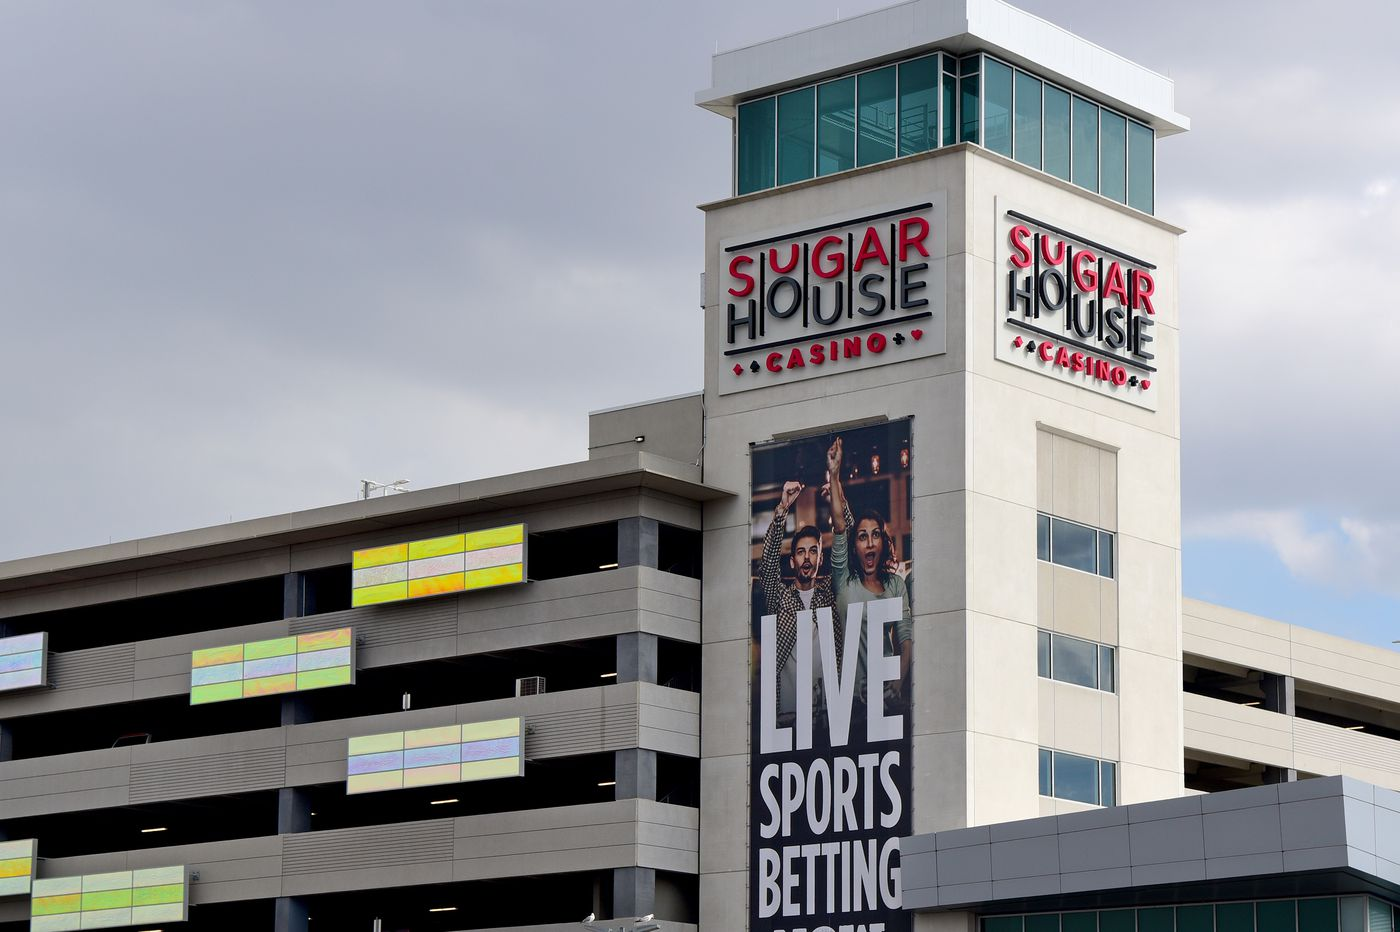 SugarHouse becomes first Pennsylvania casino to launch internet sports betting